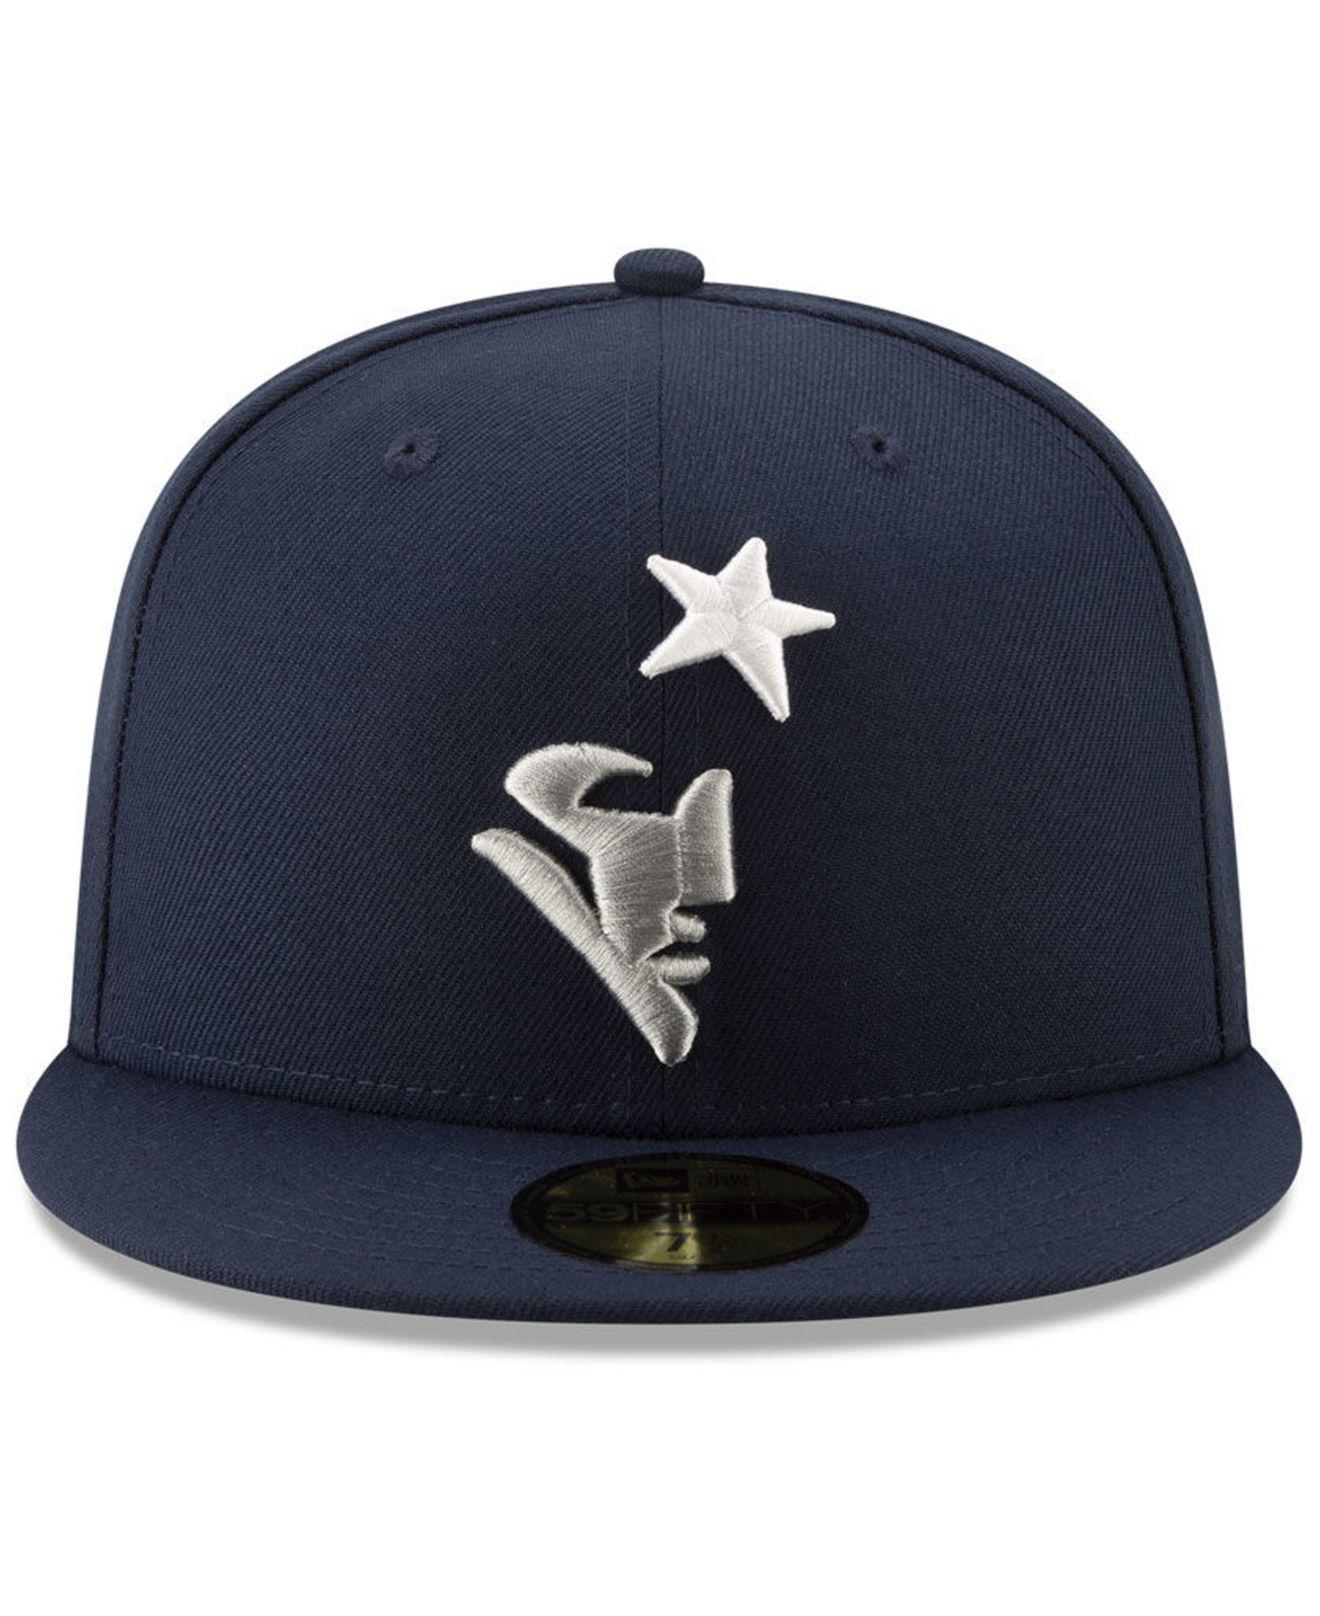 45913ce8950 Lyst - KTZ New England Patriots Logo Elements Collection 59fifty Fitted Cap  in Blue